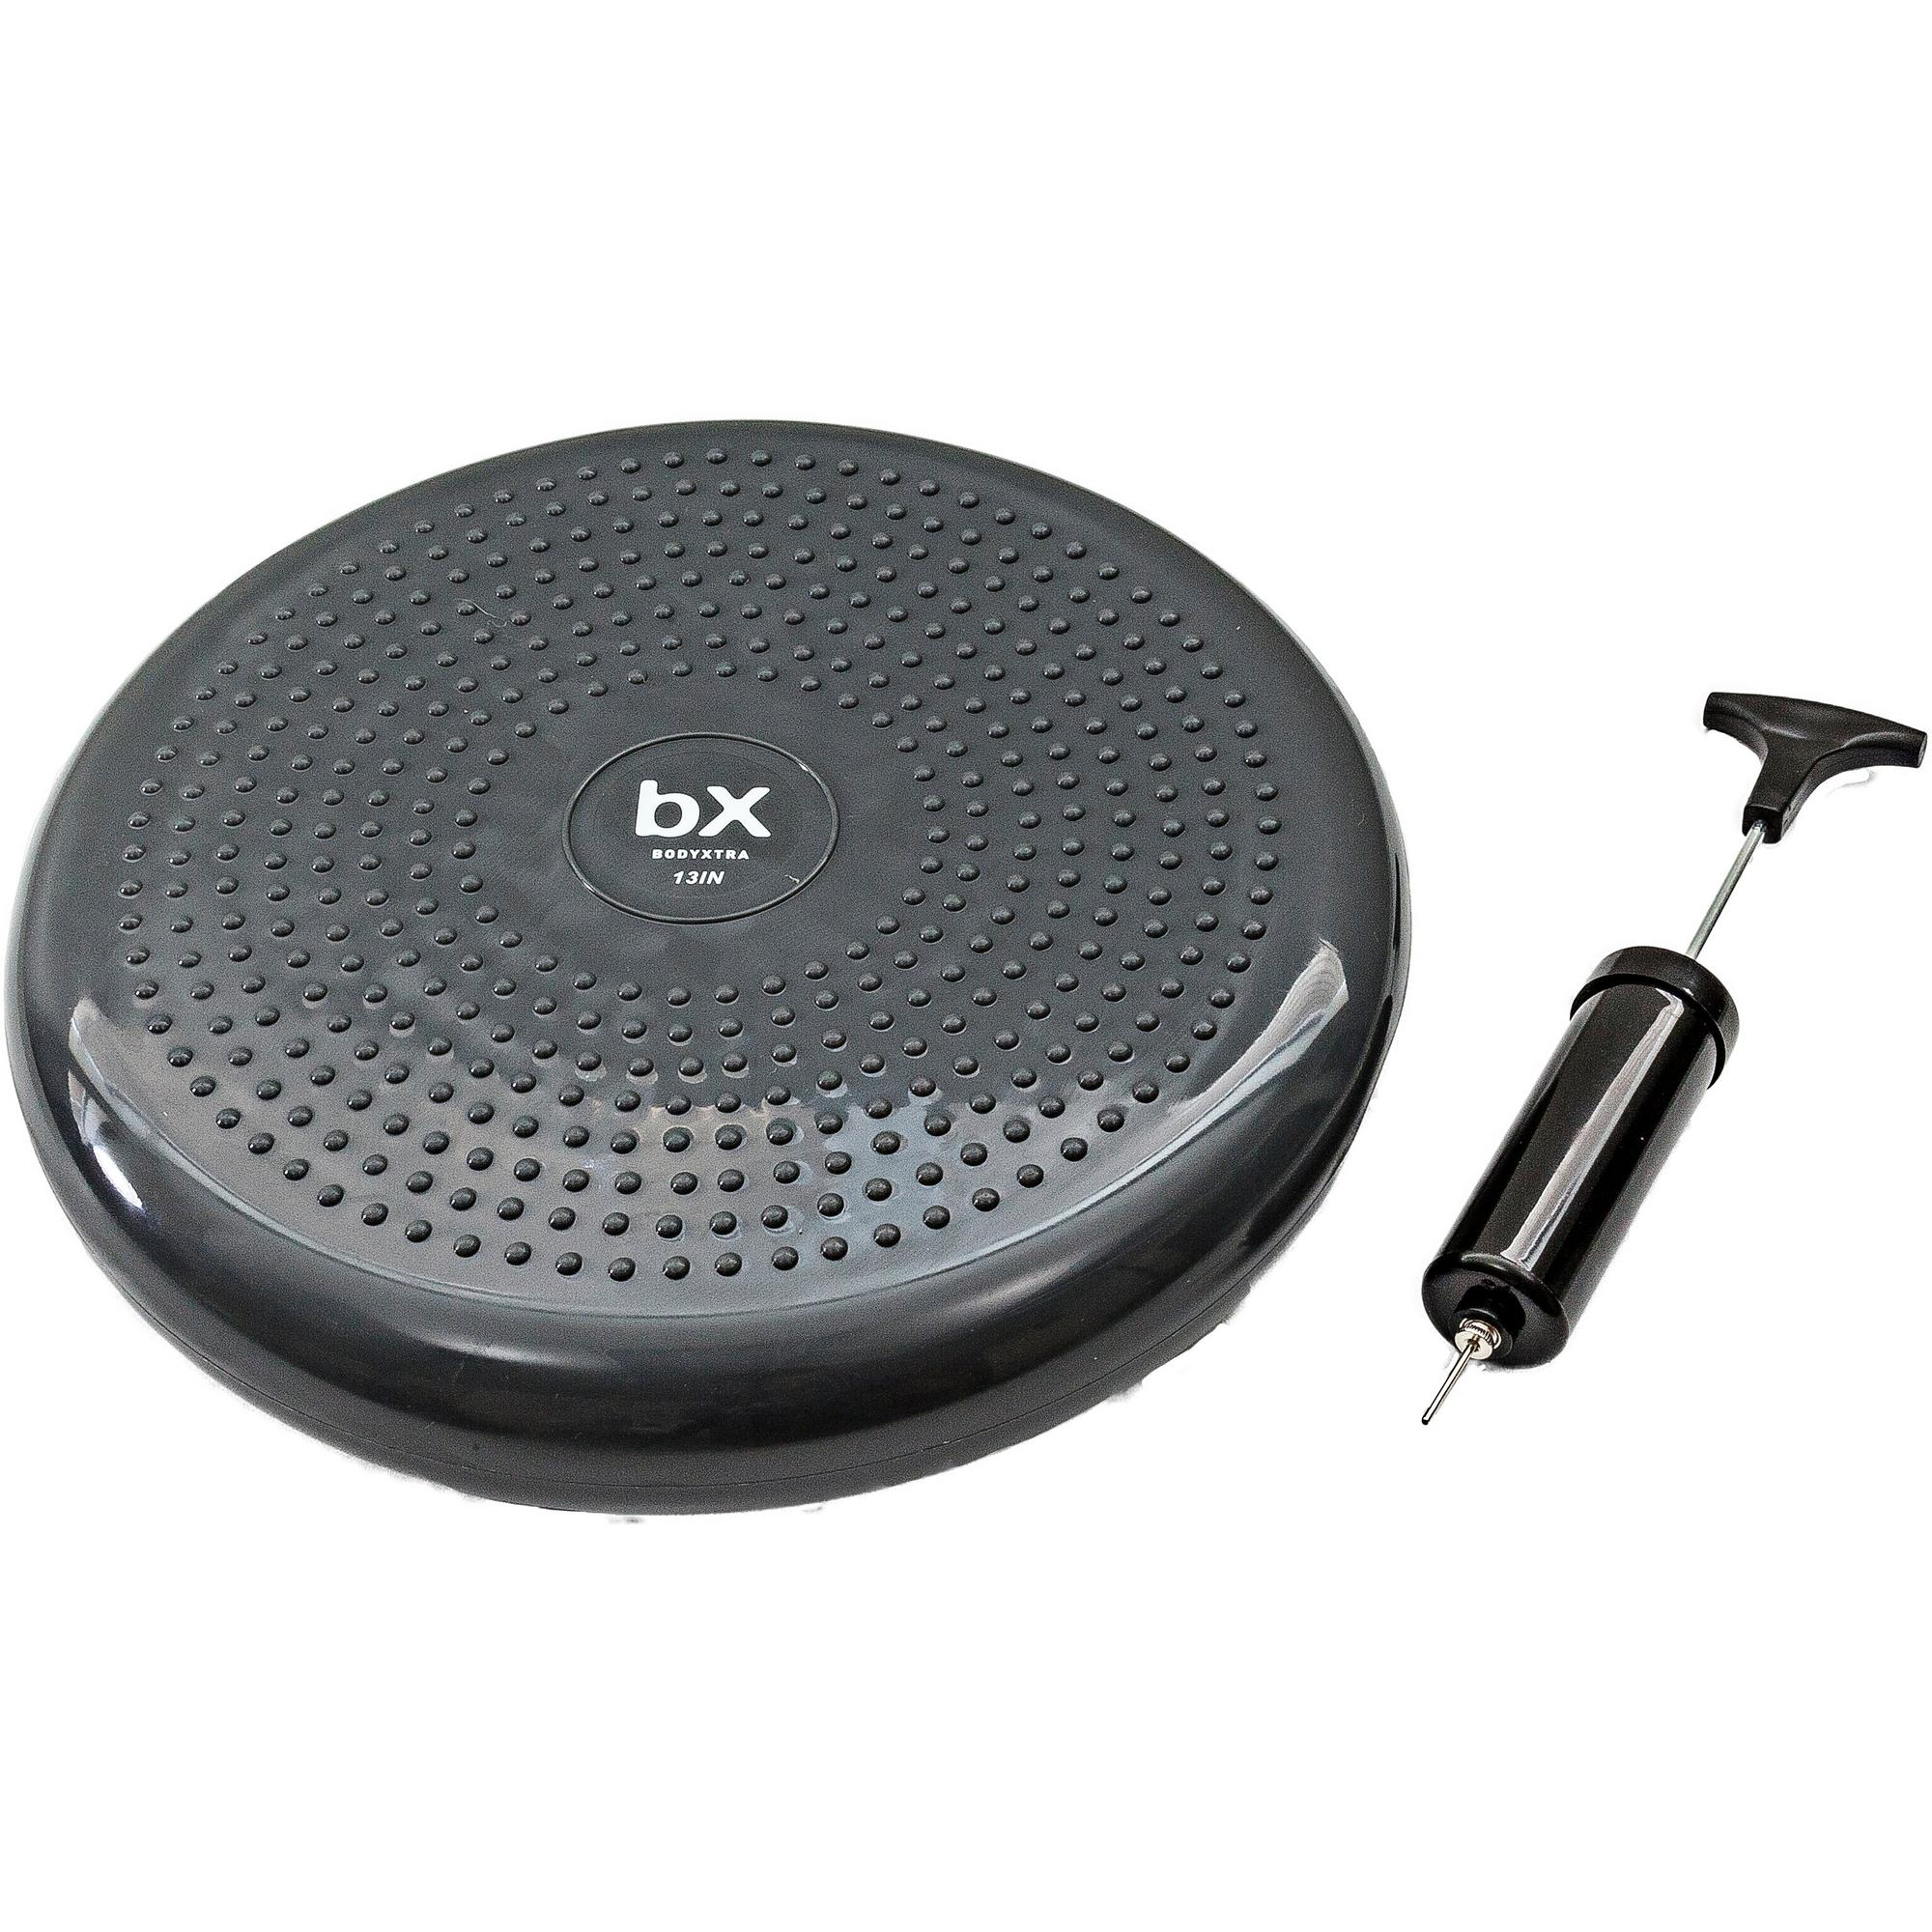 BODYXTRA Balance Cushion